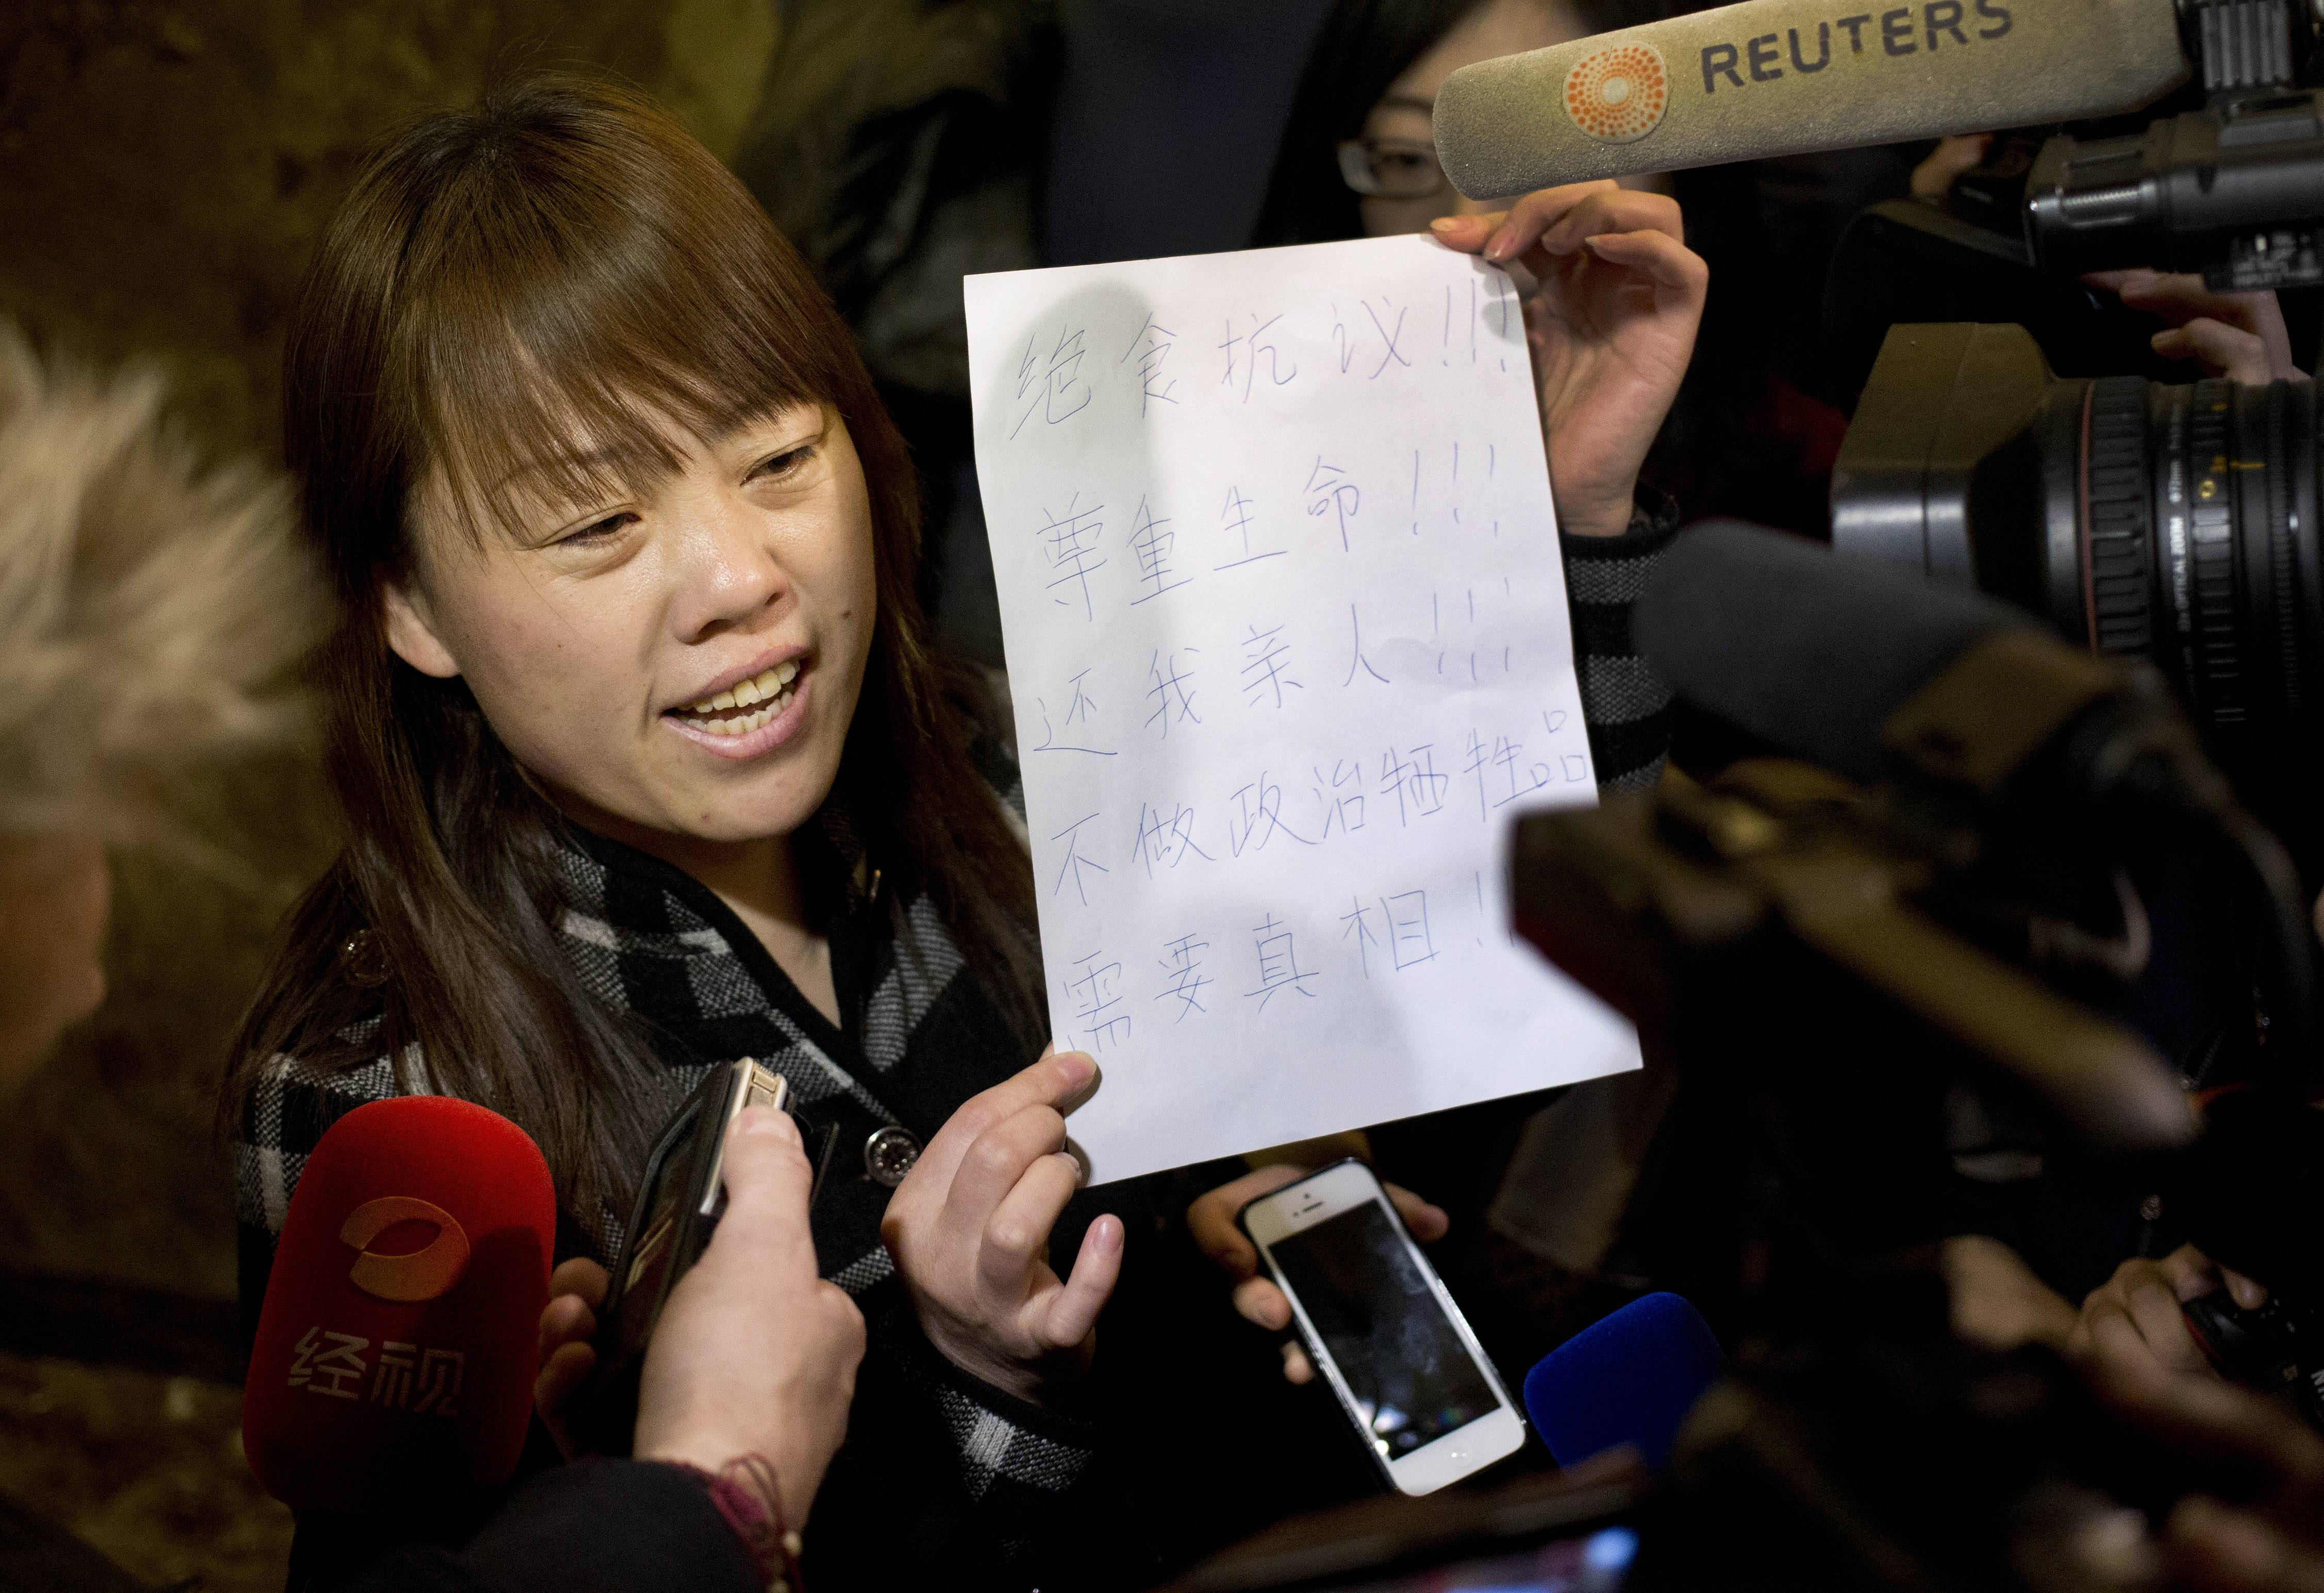 "A relative of a Chinese passenger aboard the missing Malaysia Airlines Flight MH370 shows a paper reading ""Hunger strike protest, Respect life, Return my relative, Don't want become victim of politics, Tell the truth"" as she speaks to the media outside a hotel ballroom after attending a briefing held by airlines' officials in Beijing, China, Tuesday. Families of the passengers aboard the missing plane decided to organize a hunger strike to express their anger and disappointment at the handling of the situation by authorities."